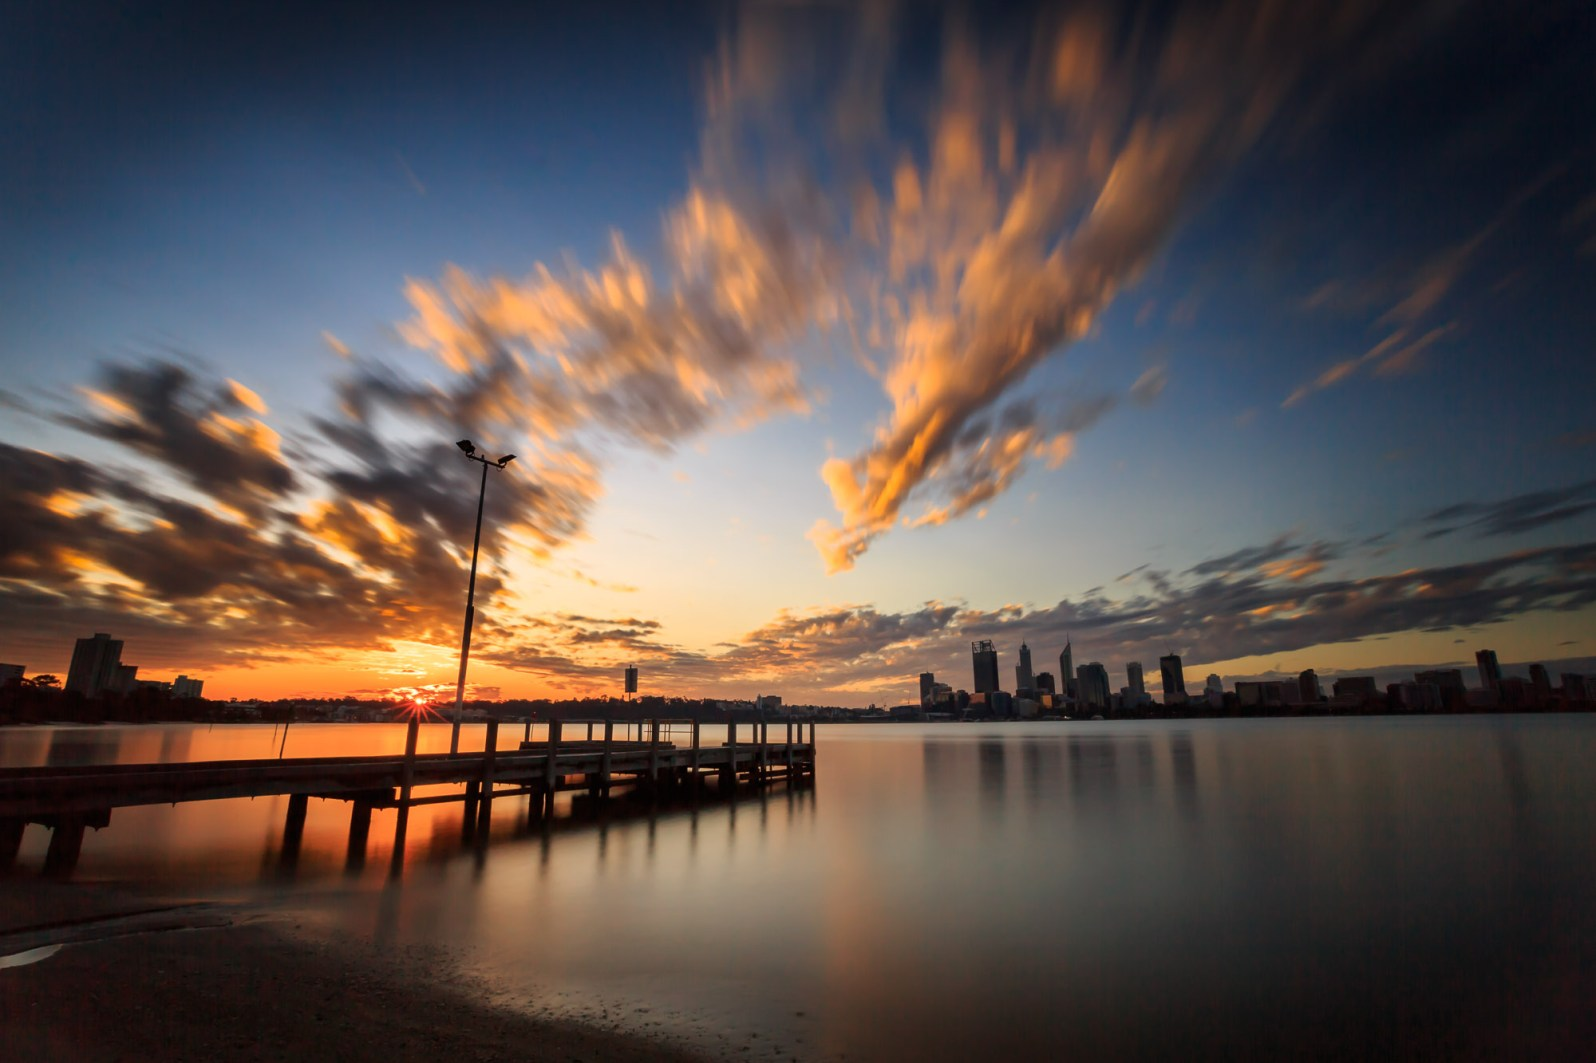 Coode St Jetty at Sunset